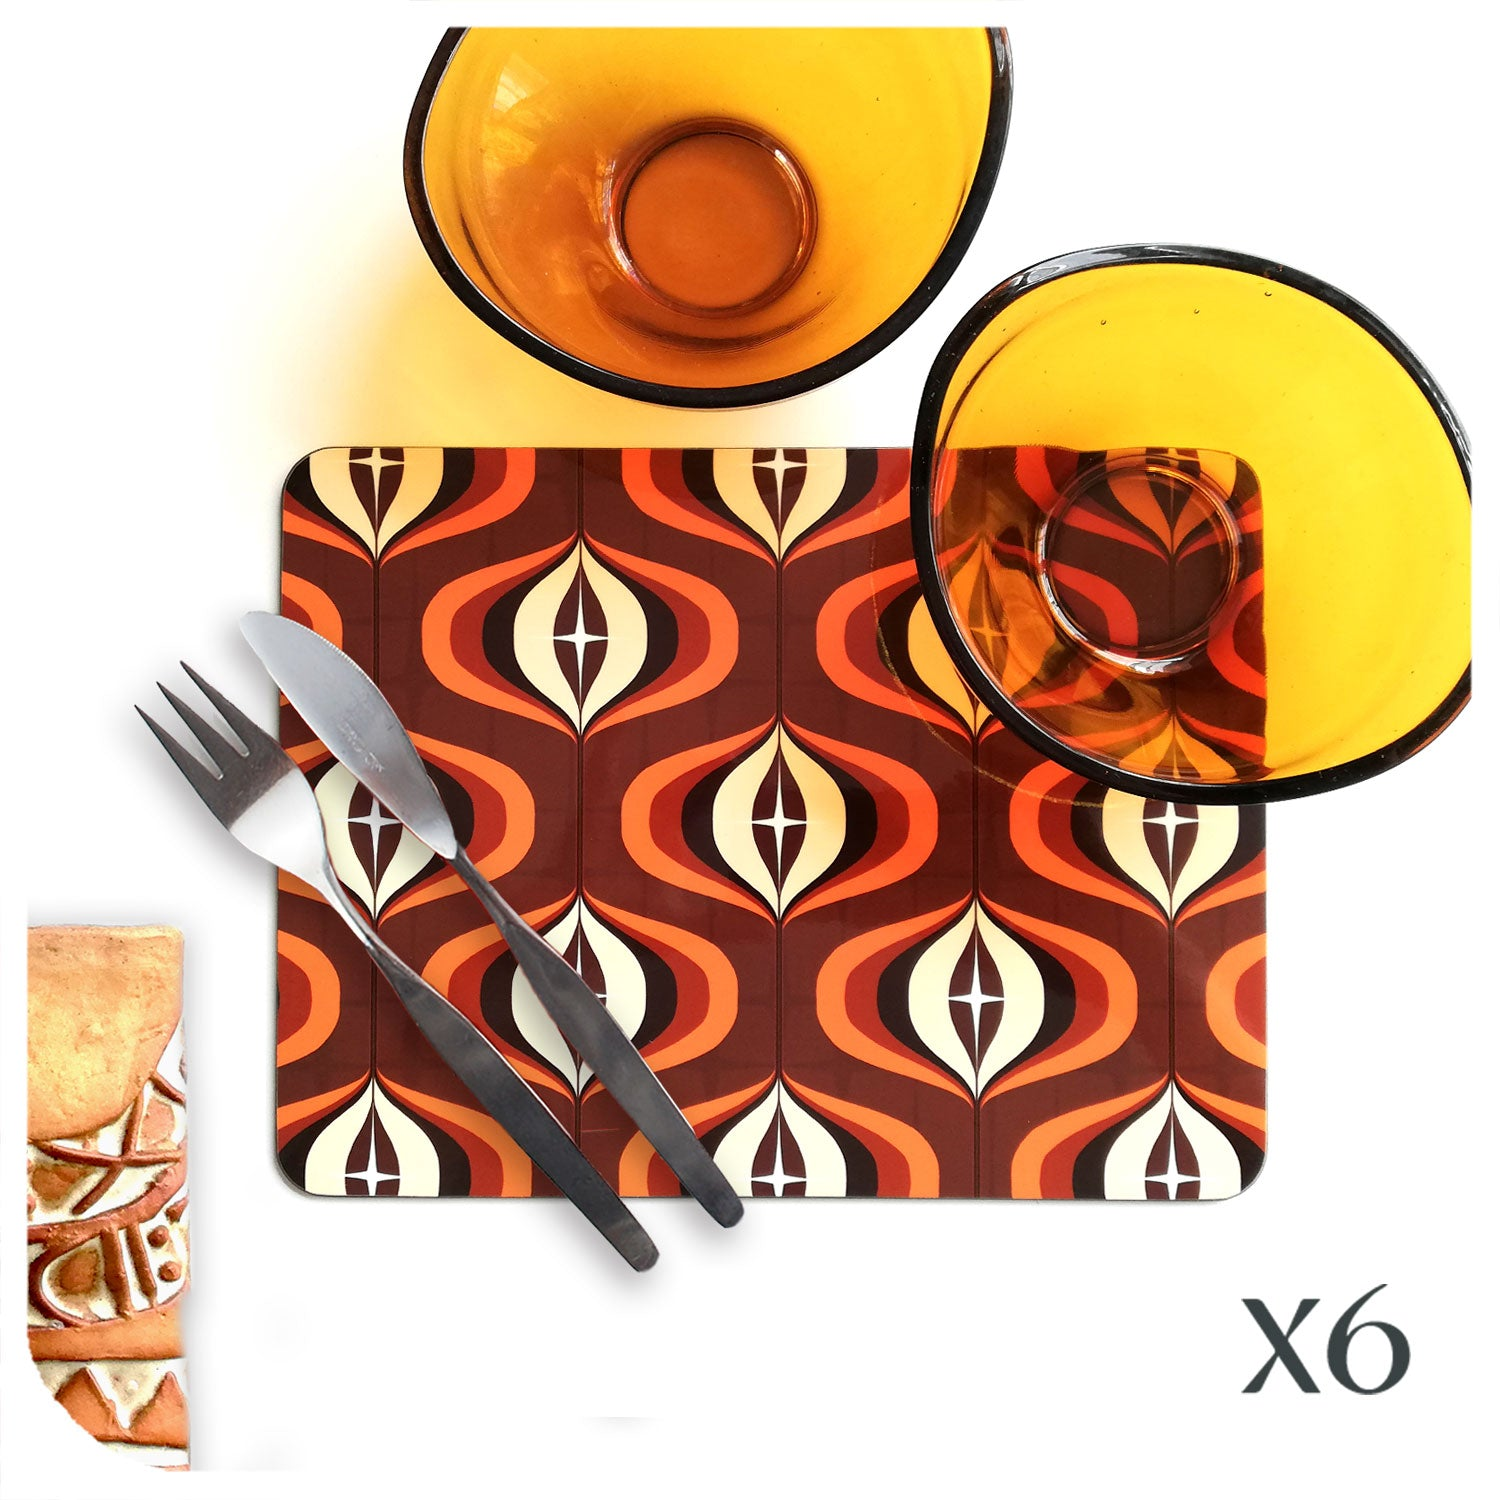 1970s Op Art Placemat in Brown and Orange | The Inkabilly Emporium